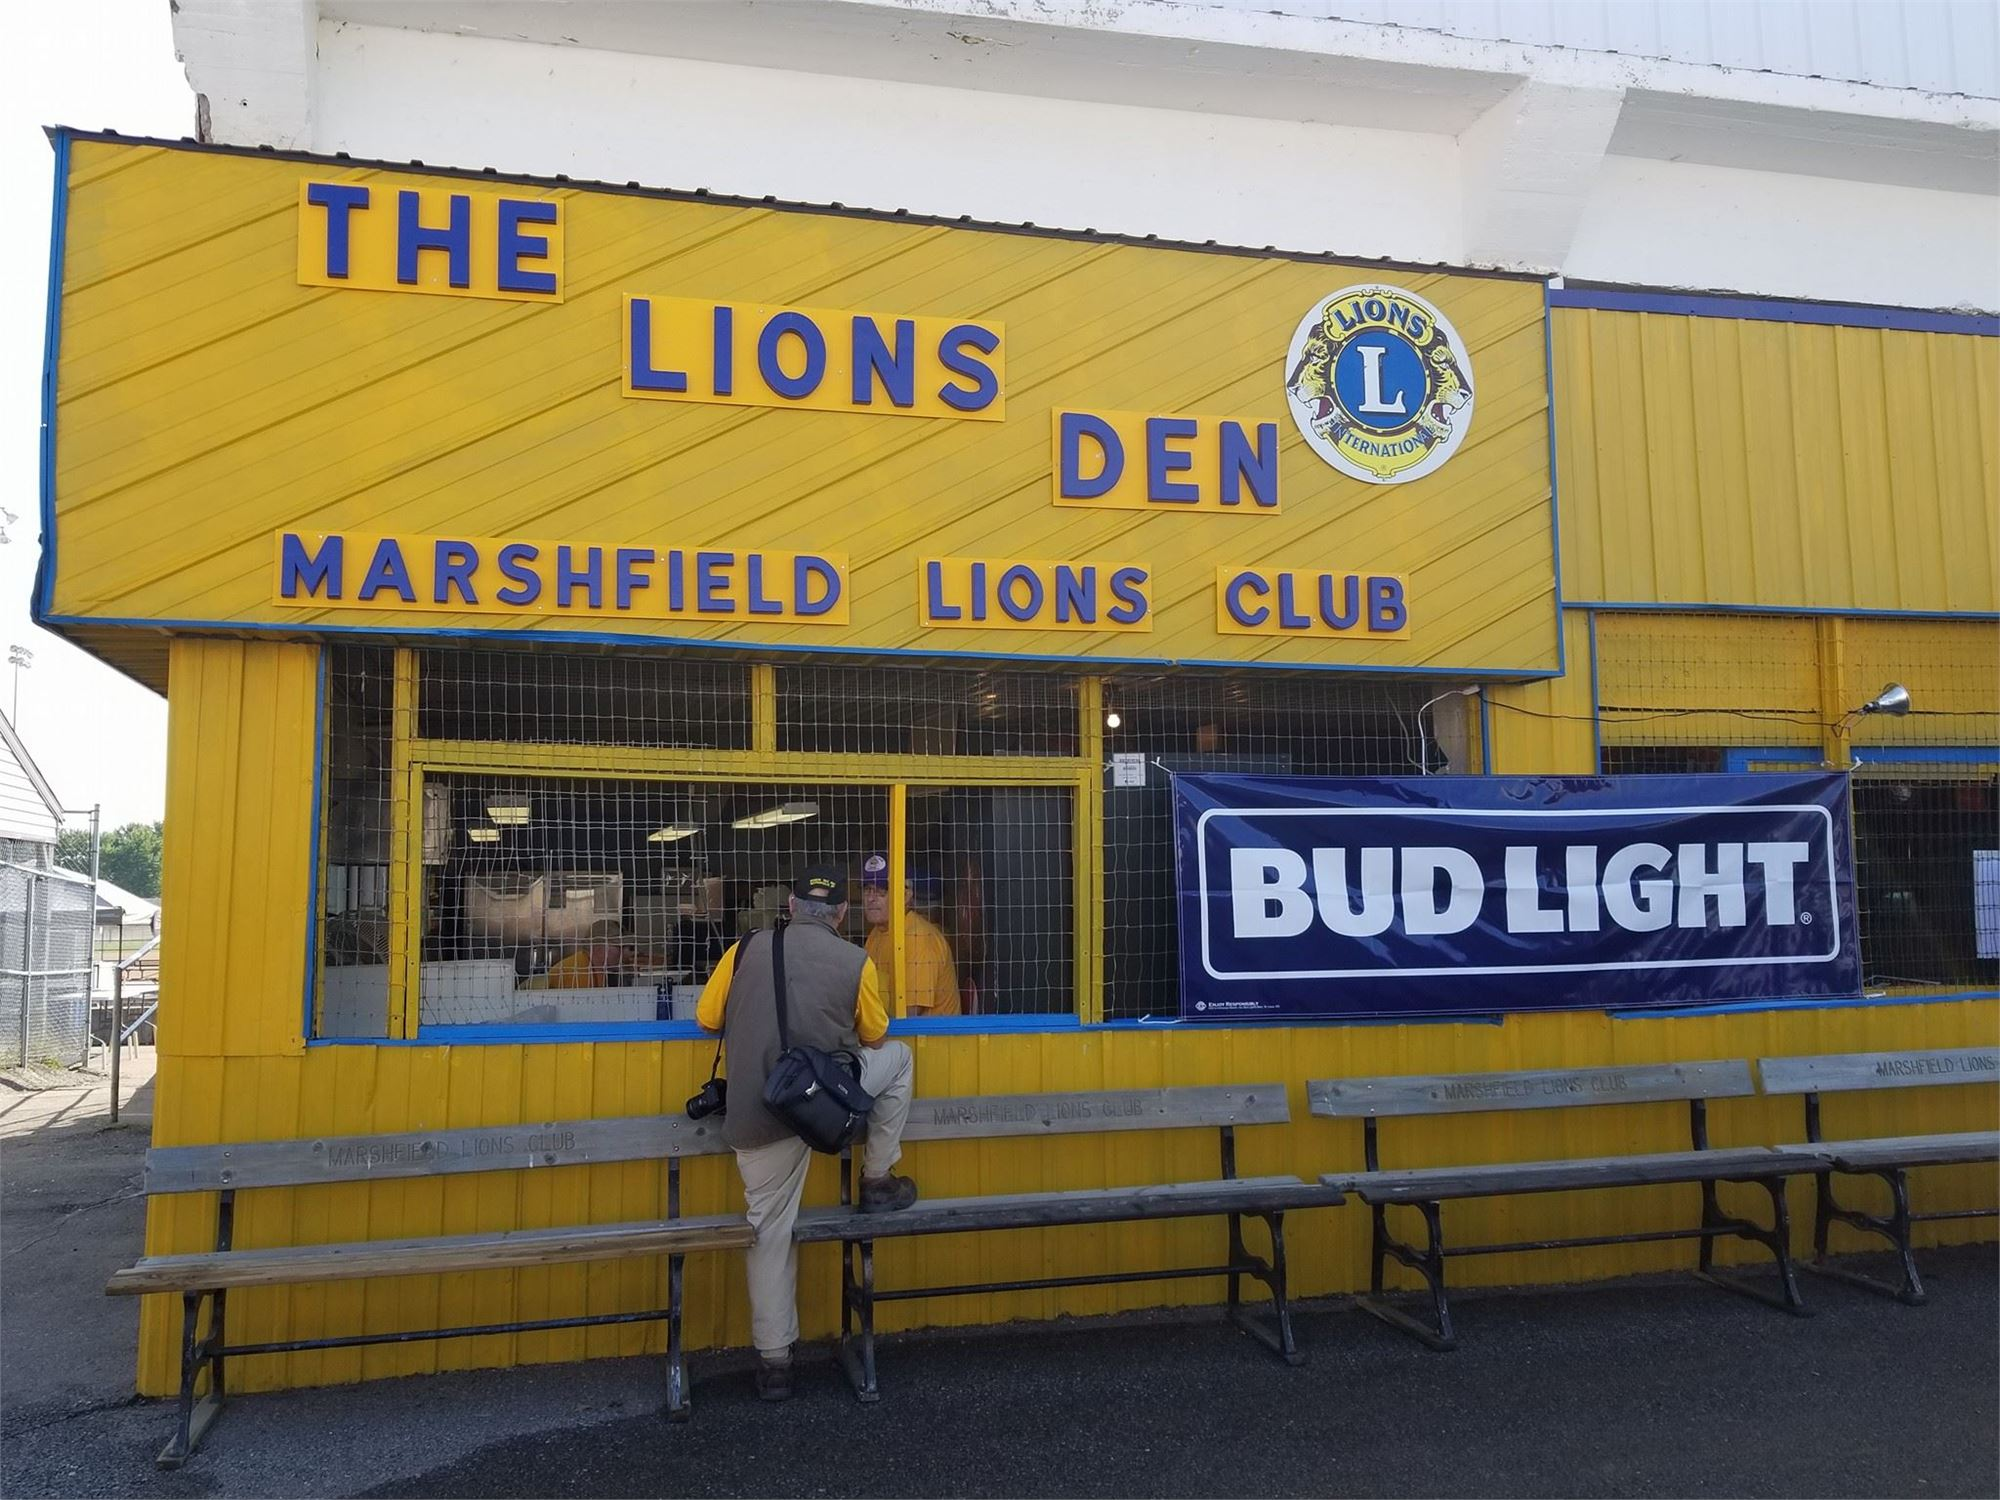 Marshfield Lion's Club - Lion's Den